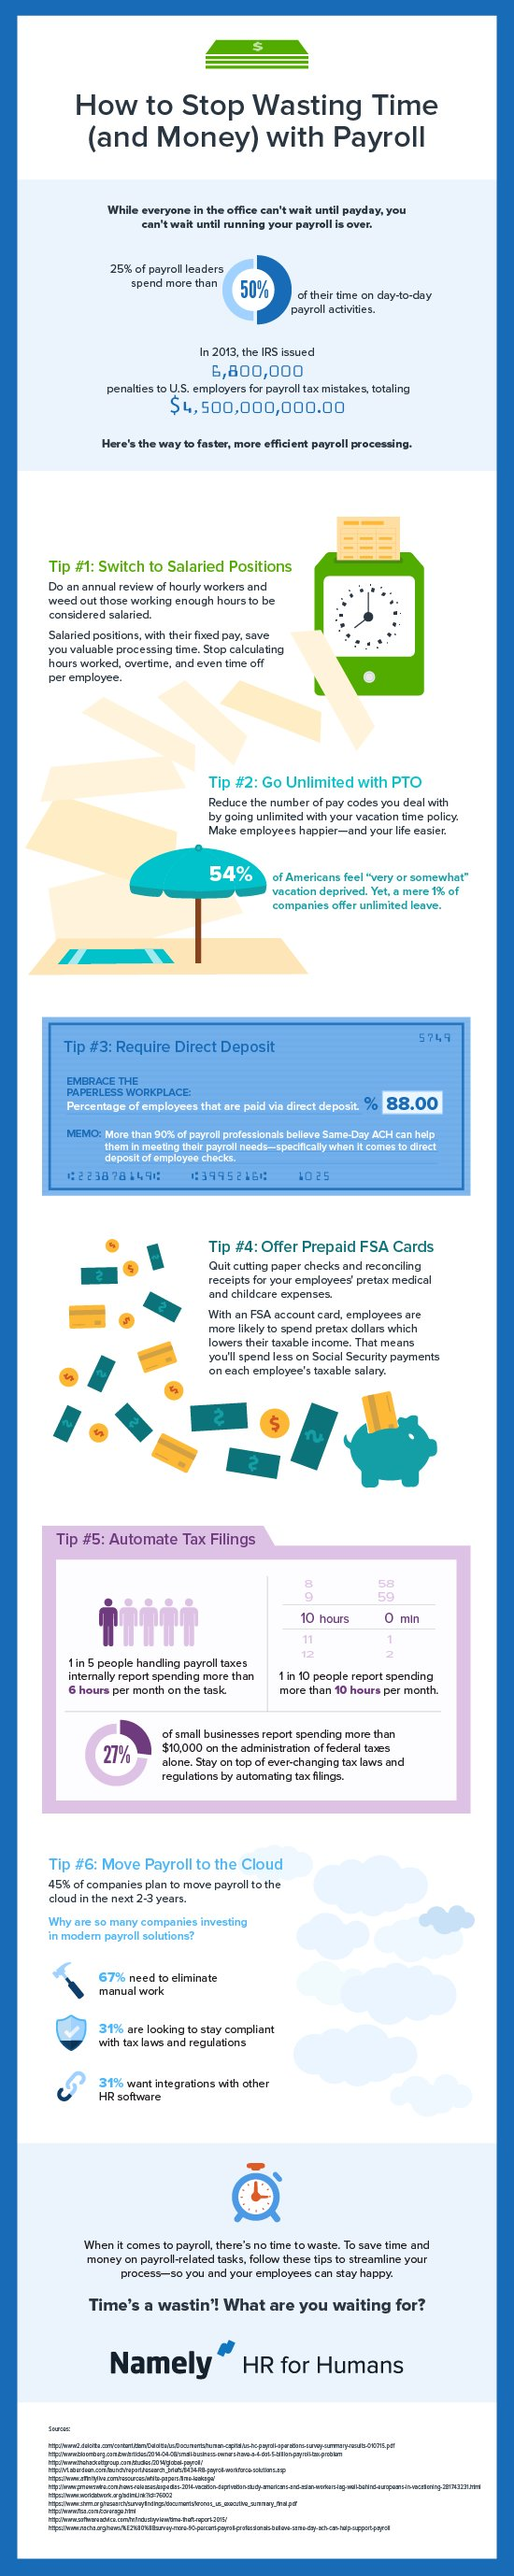 Namely_Payroll_Infographic_550px